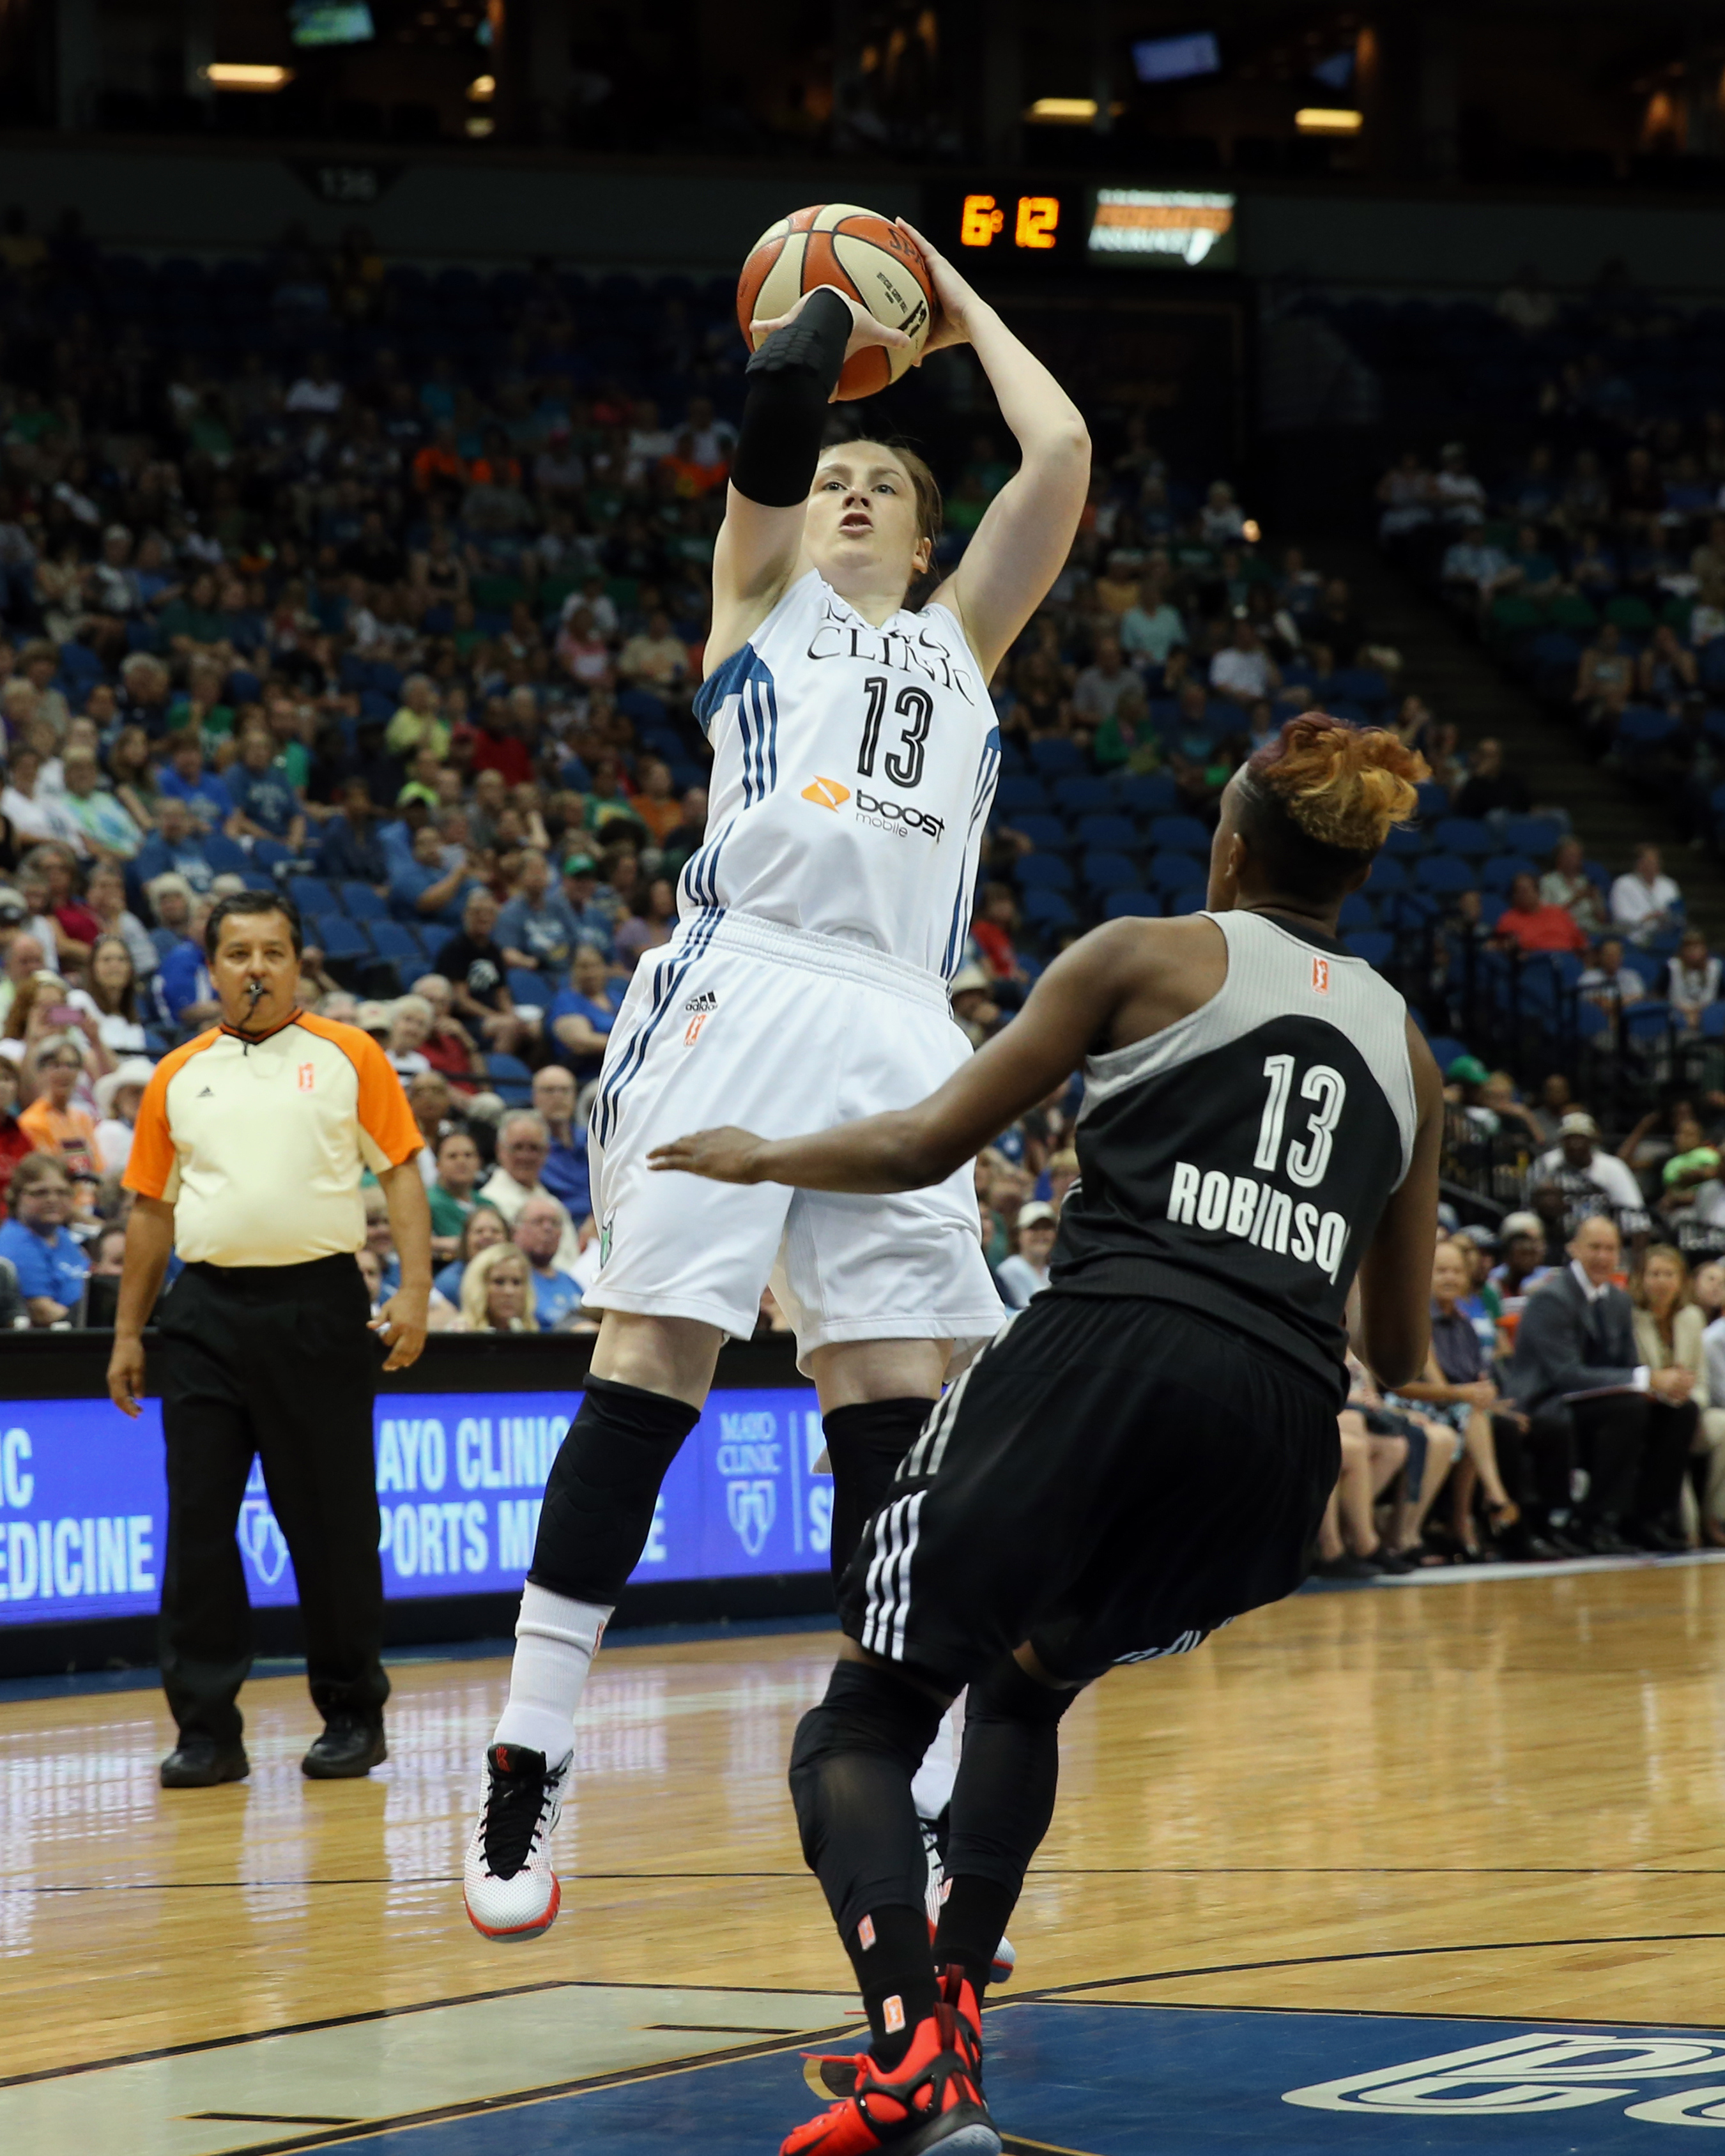 Lynx guard Lindsay Whalen  had a quiet night, scoring just two points while dishing out five assists in 18 minutes of playing time.